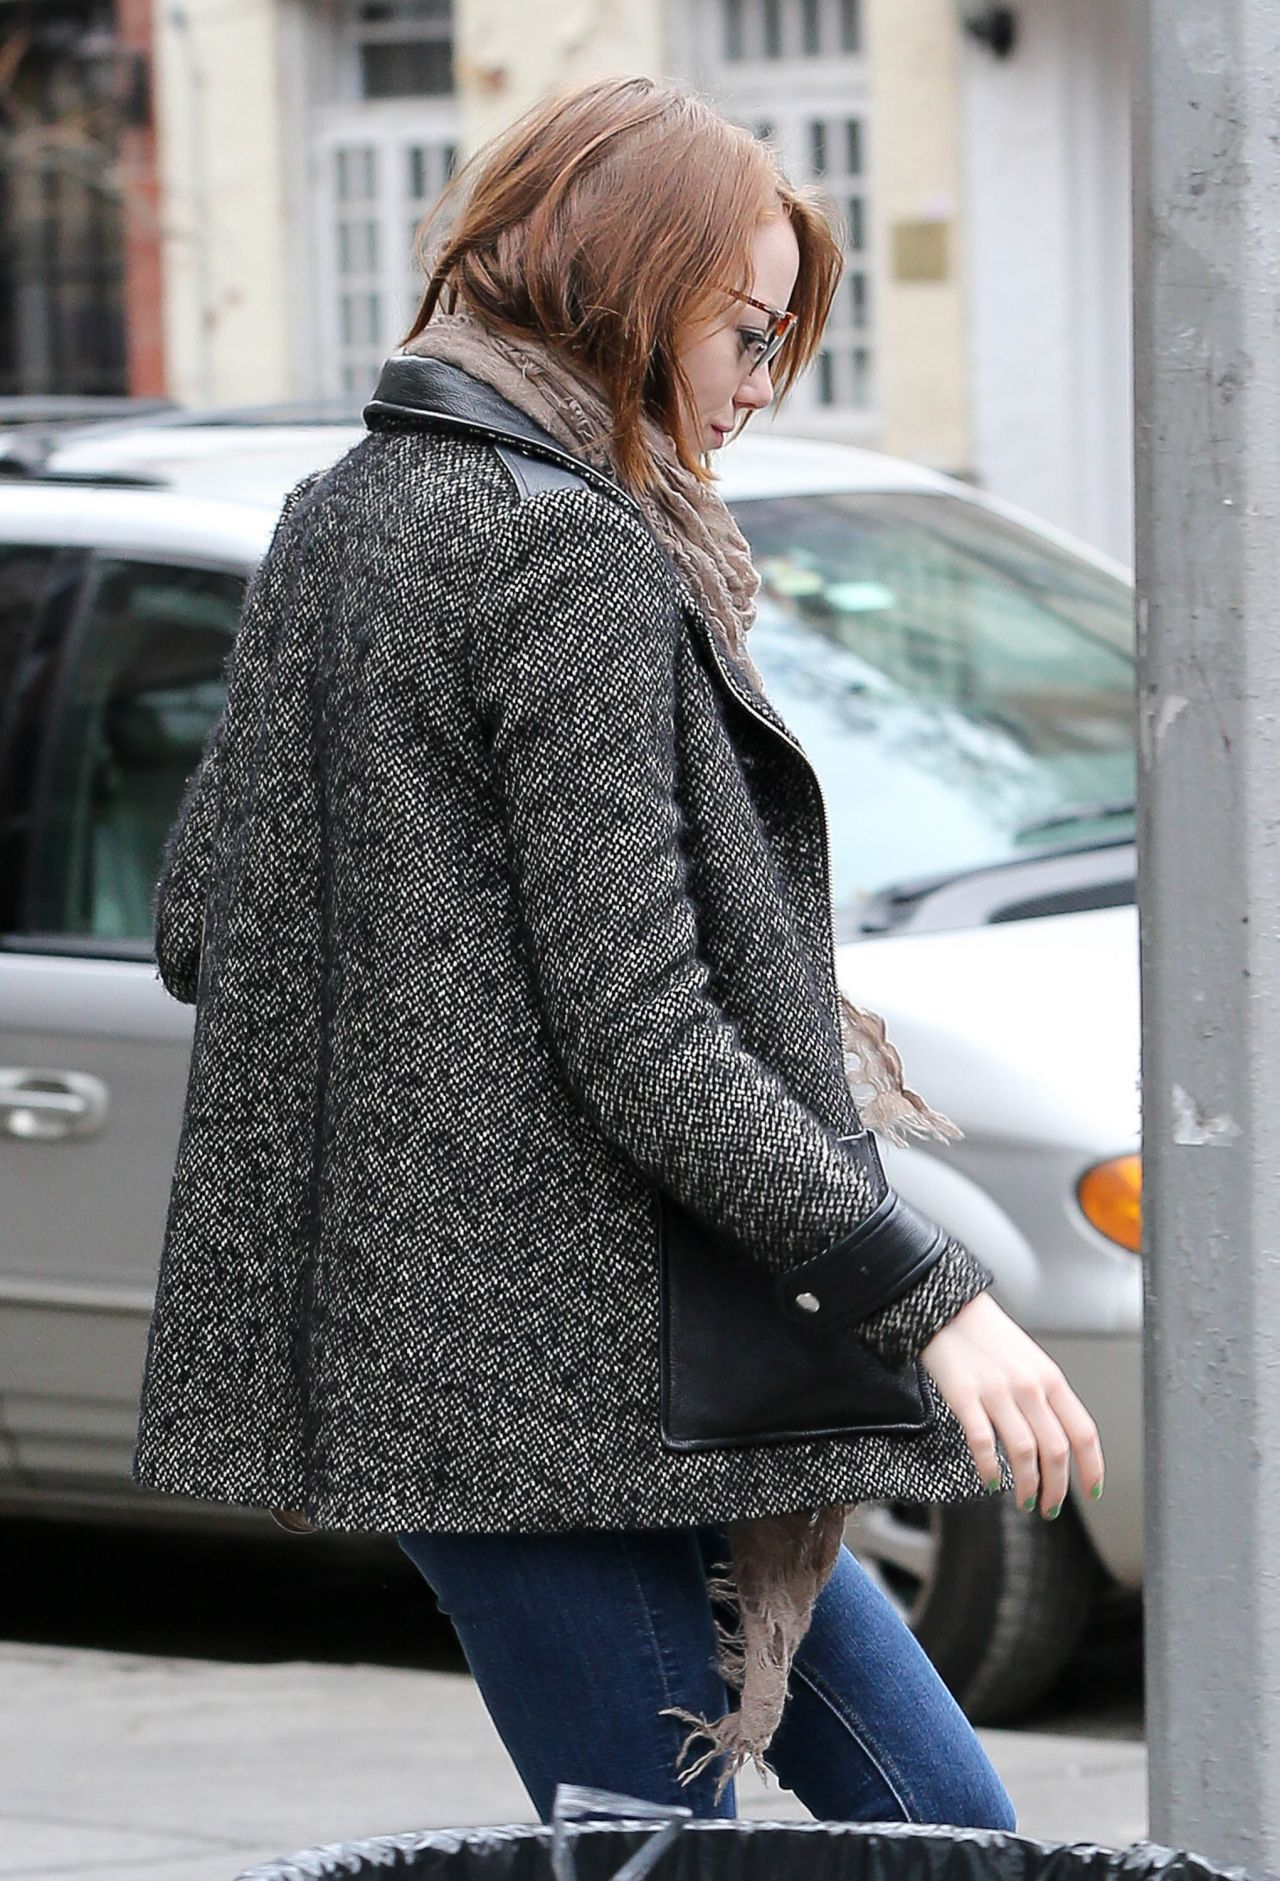 Emma Stone - Leaving Cafe Cluny in New York City, January 2015